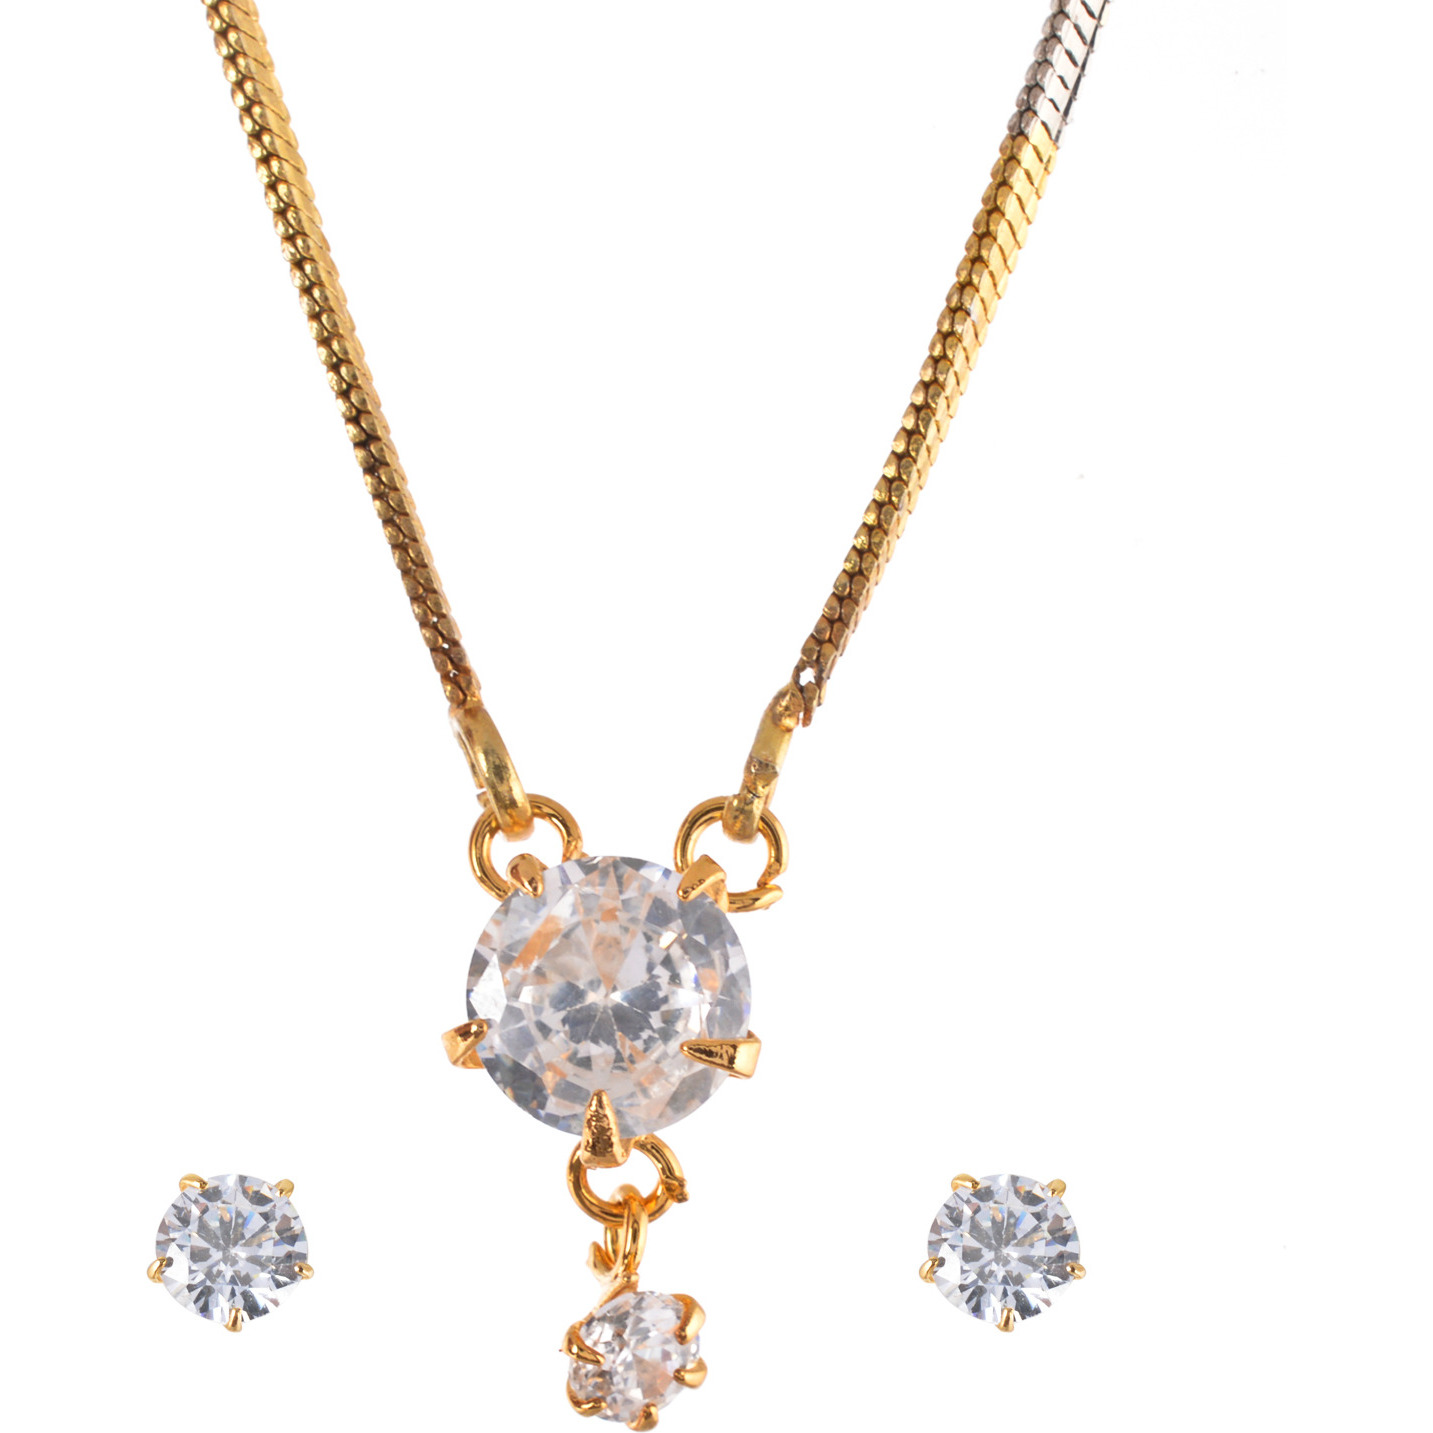 Stunning White Diamond Look Round Solitaire Rhodium Plated Earring & Pendant Set with Chain for Women